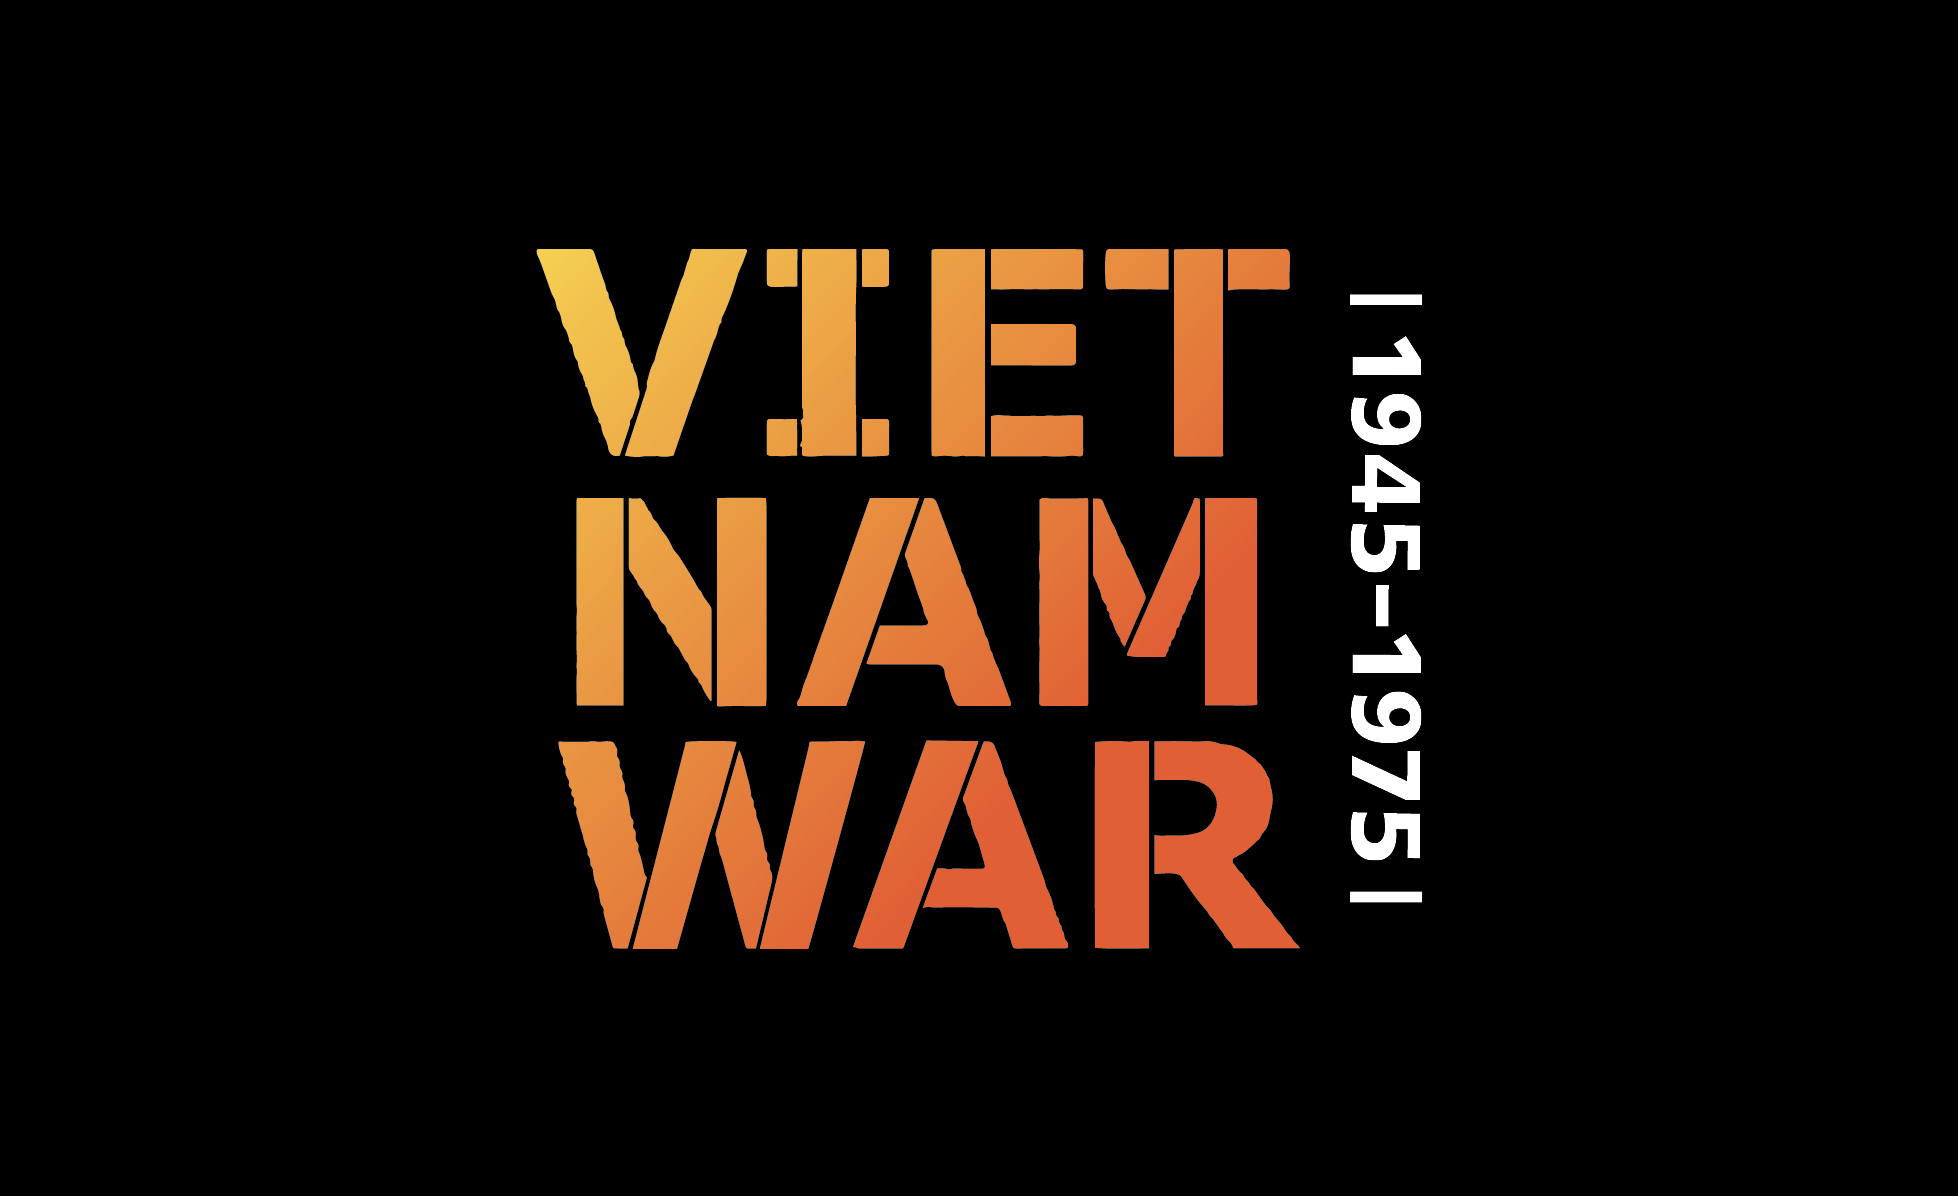 Guided Tour: The Vietnam War: 1945-1975